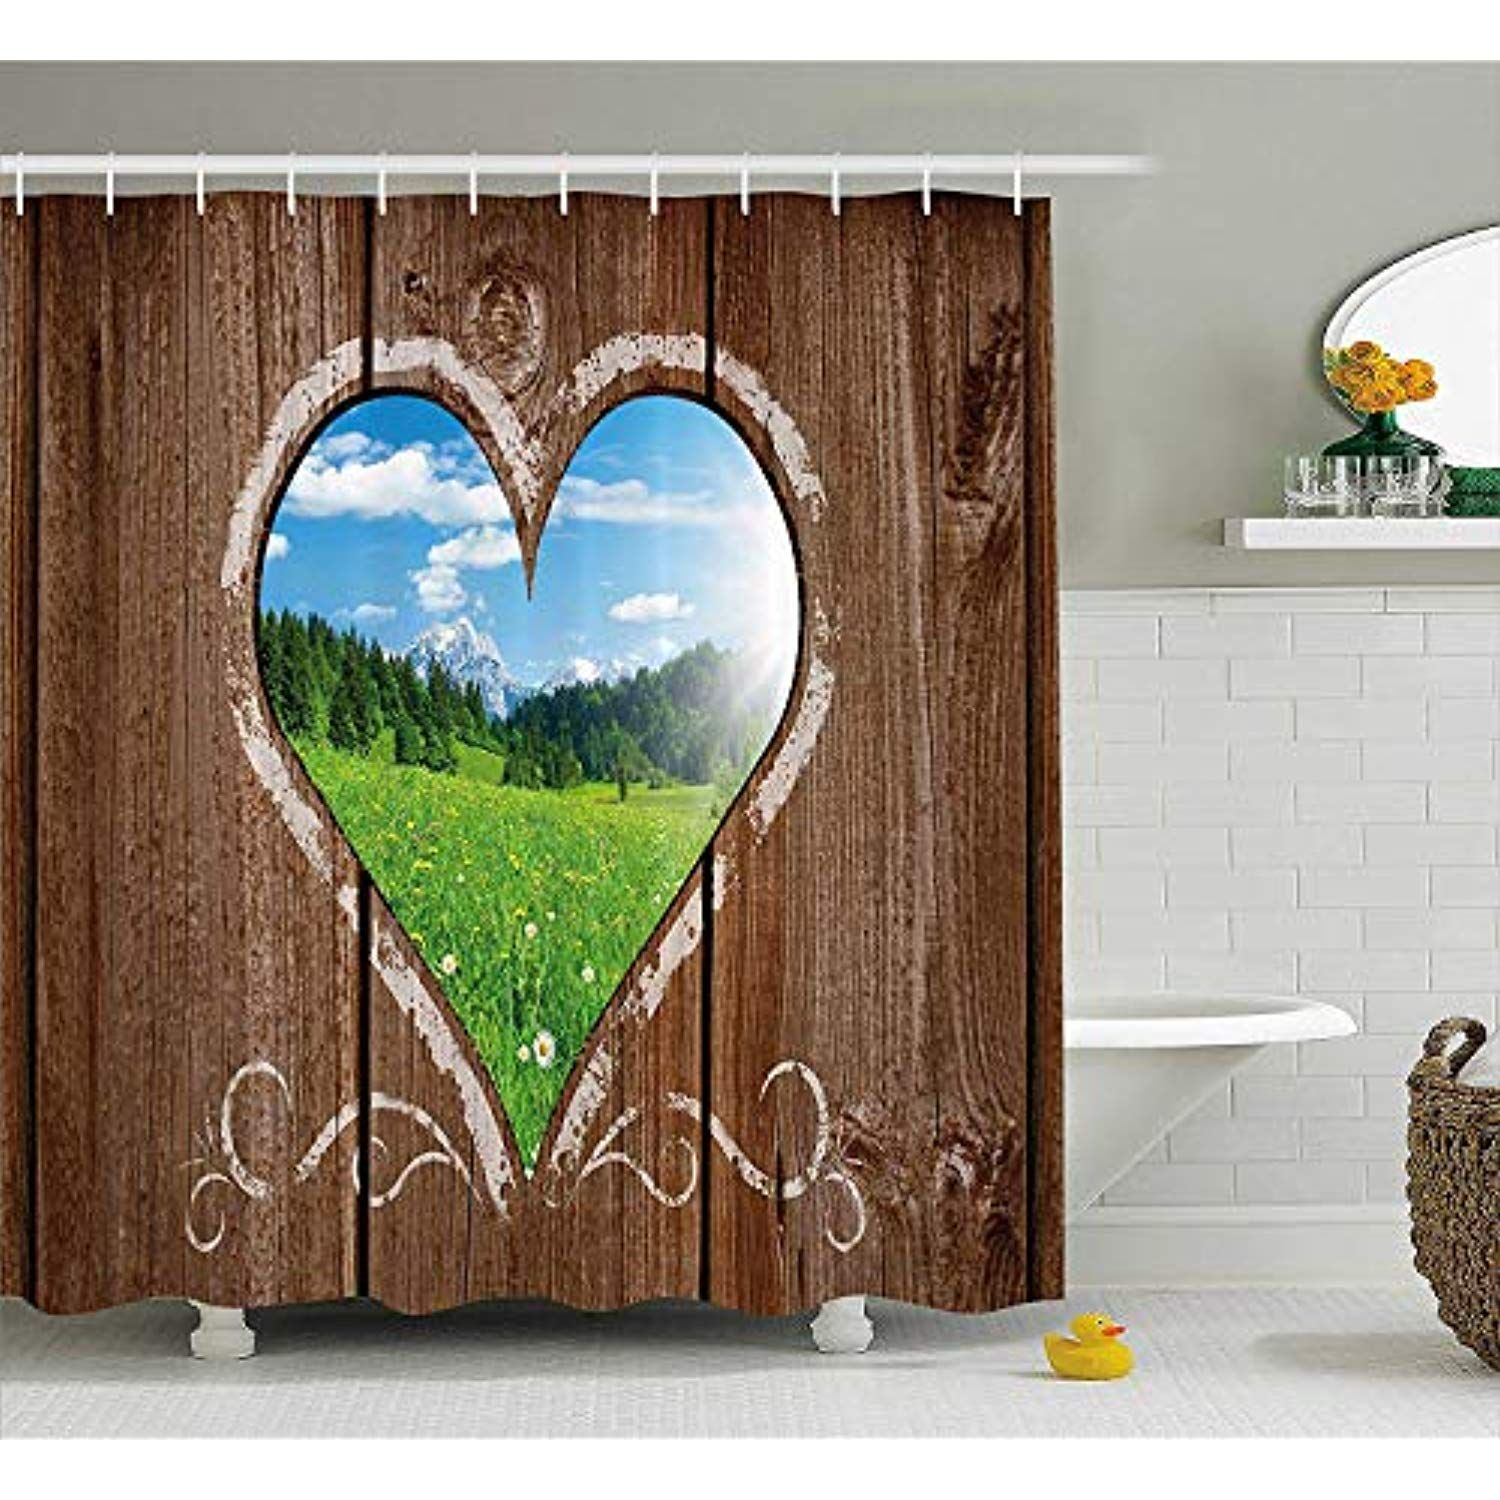 Yvsxo Outhouse Shower Curtain Heart Window View From Wooden